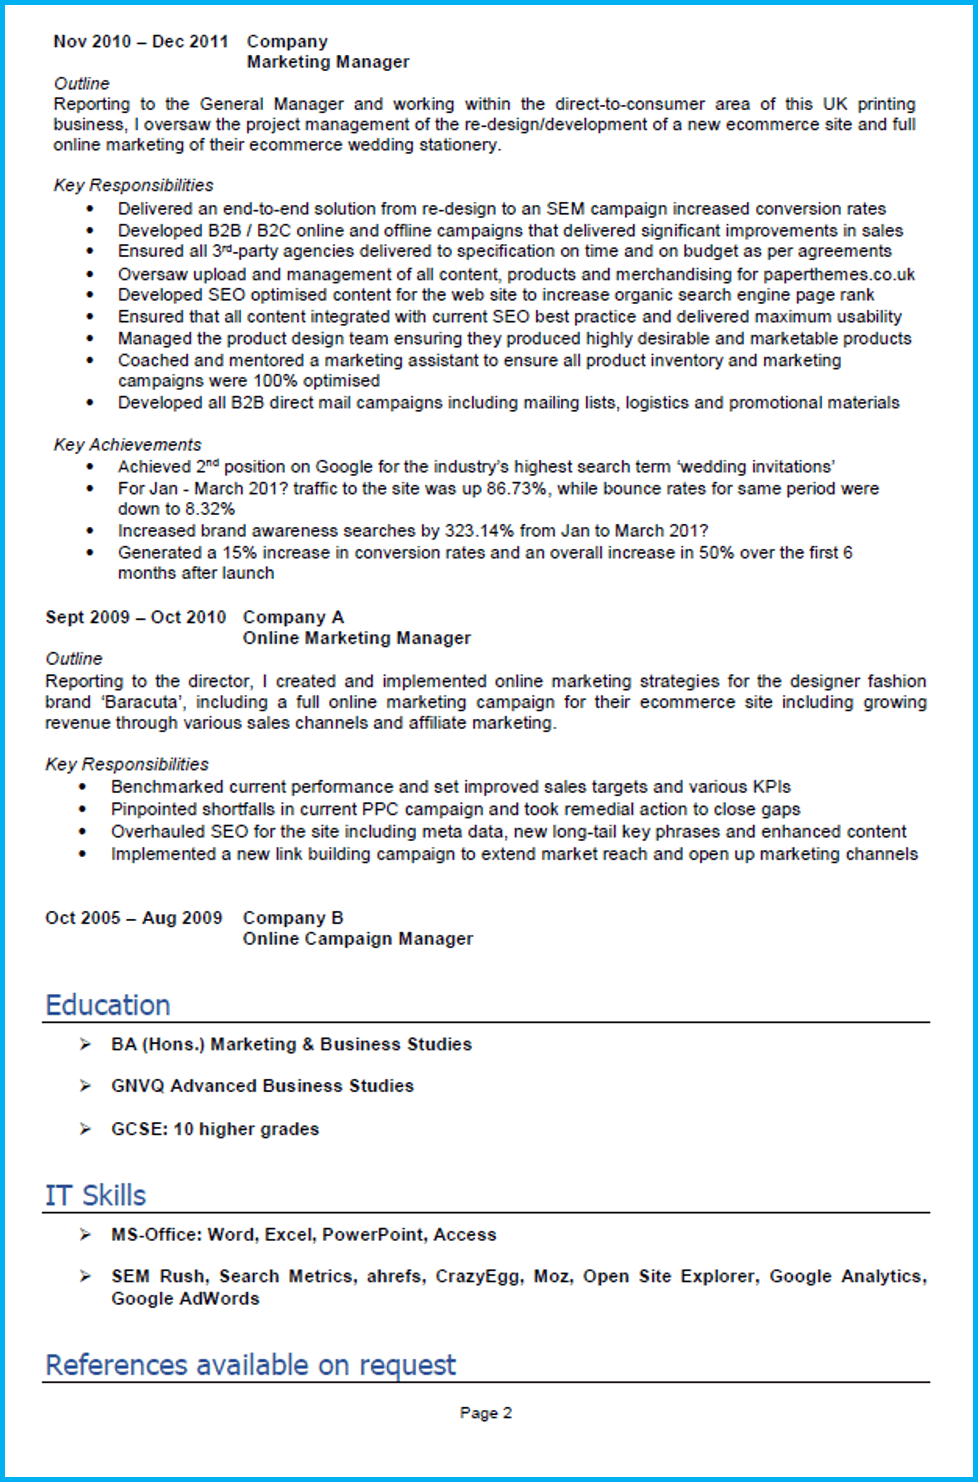 Digital marketing CV example page 2